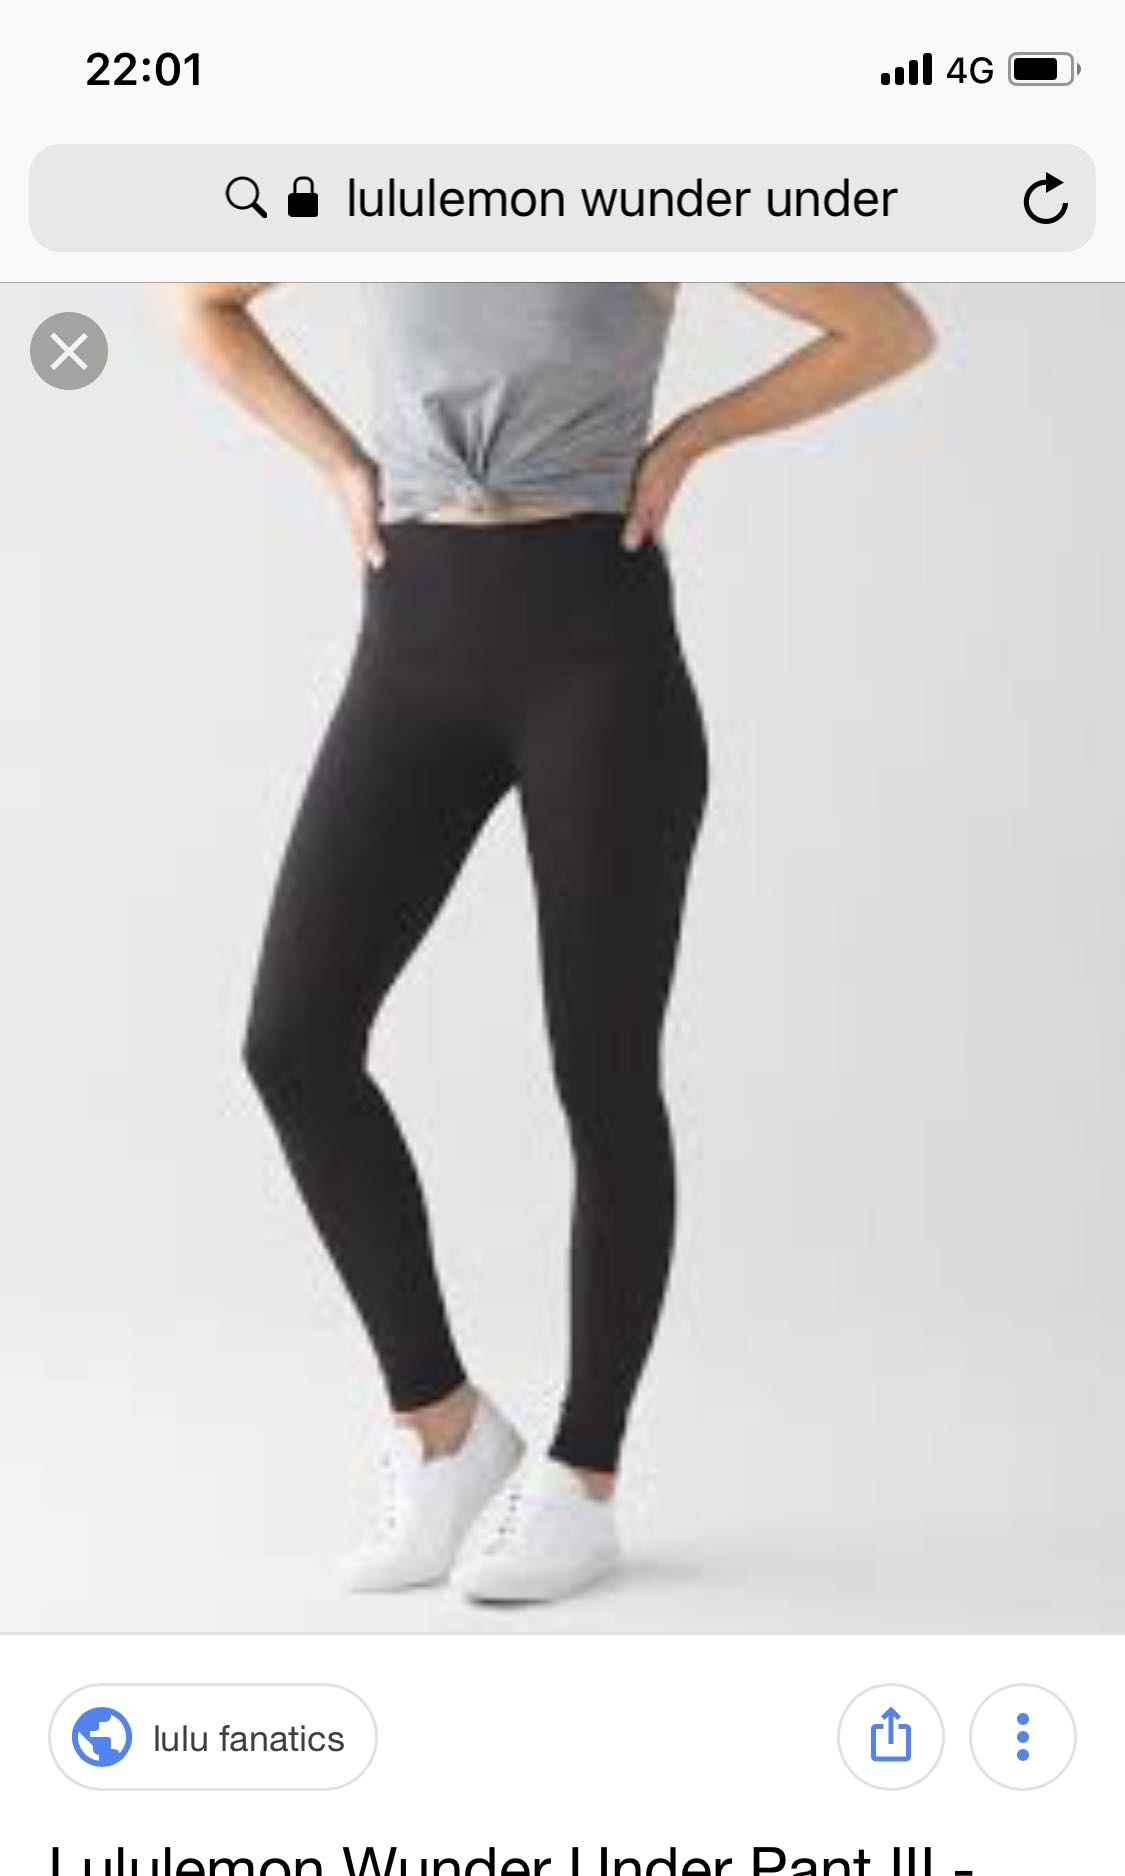 a7043d6b516 Lululemon Wunder Under Pants size 2, Sports, Sports Apparel on Carousell